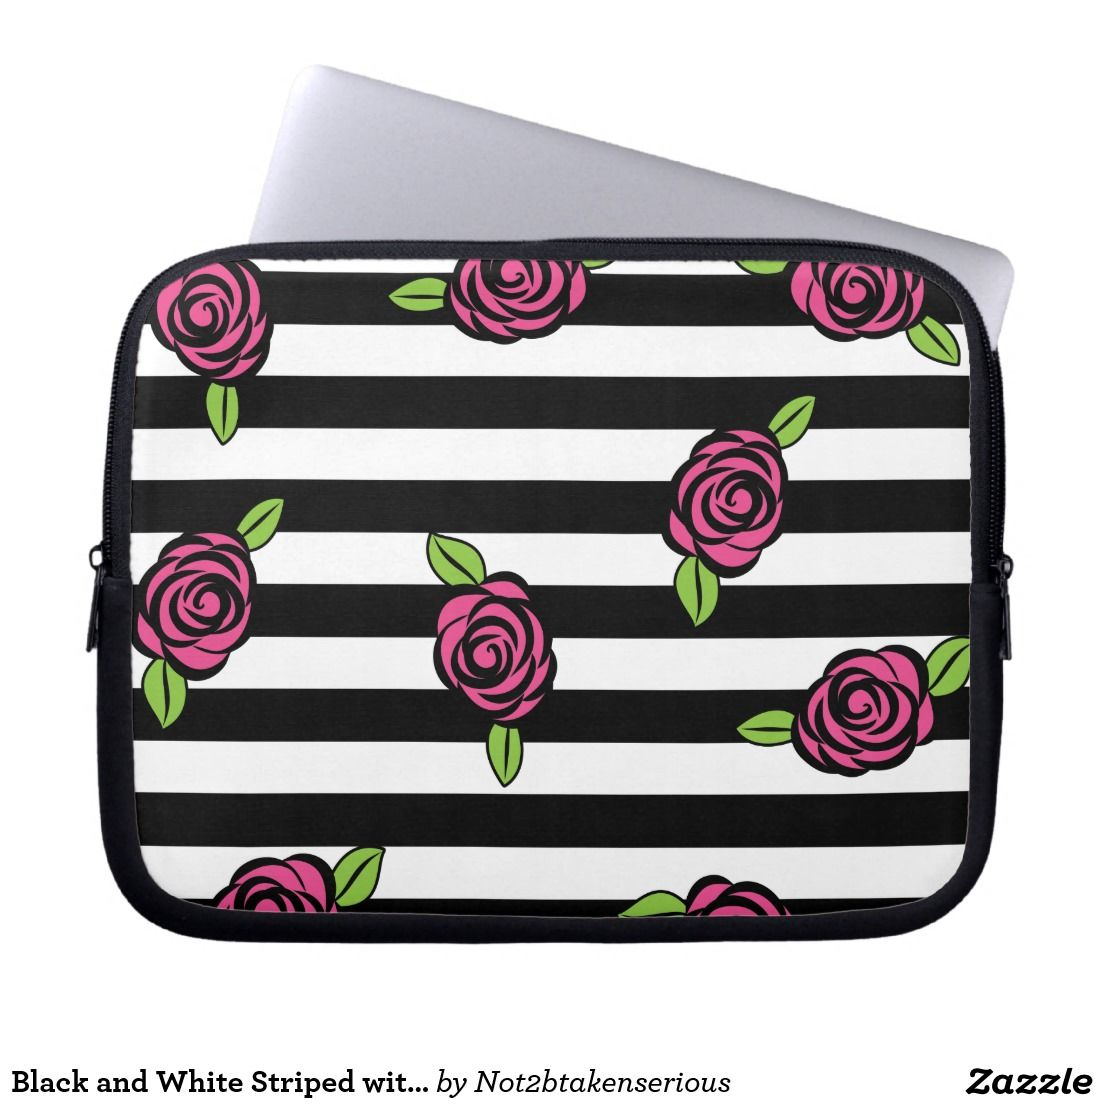 Black and White Striped with Pink Roses Laptop Sleeve